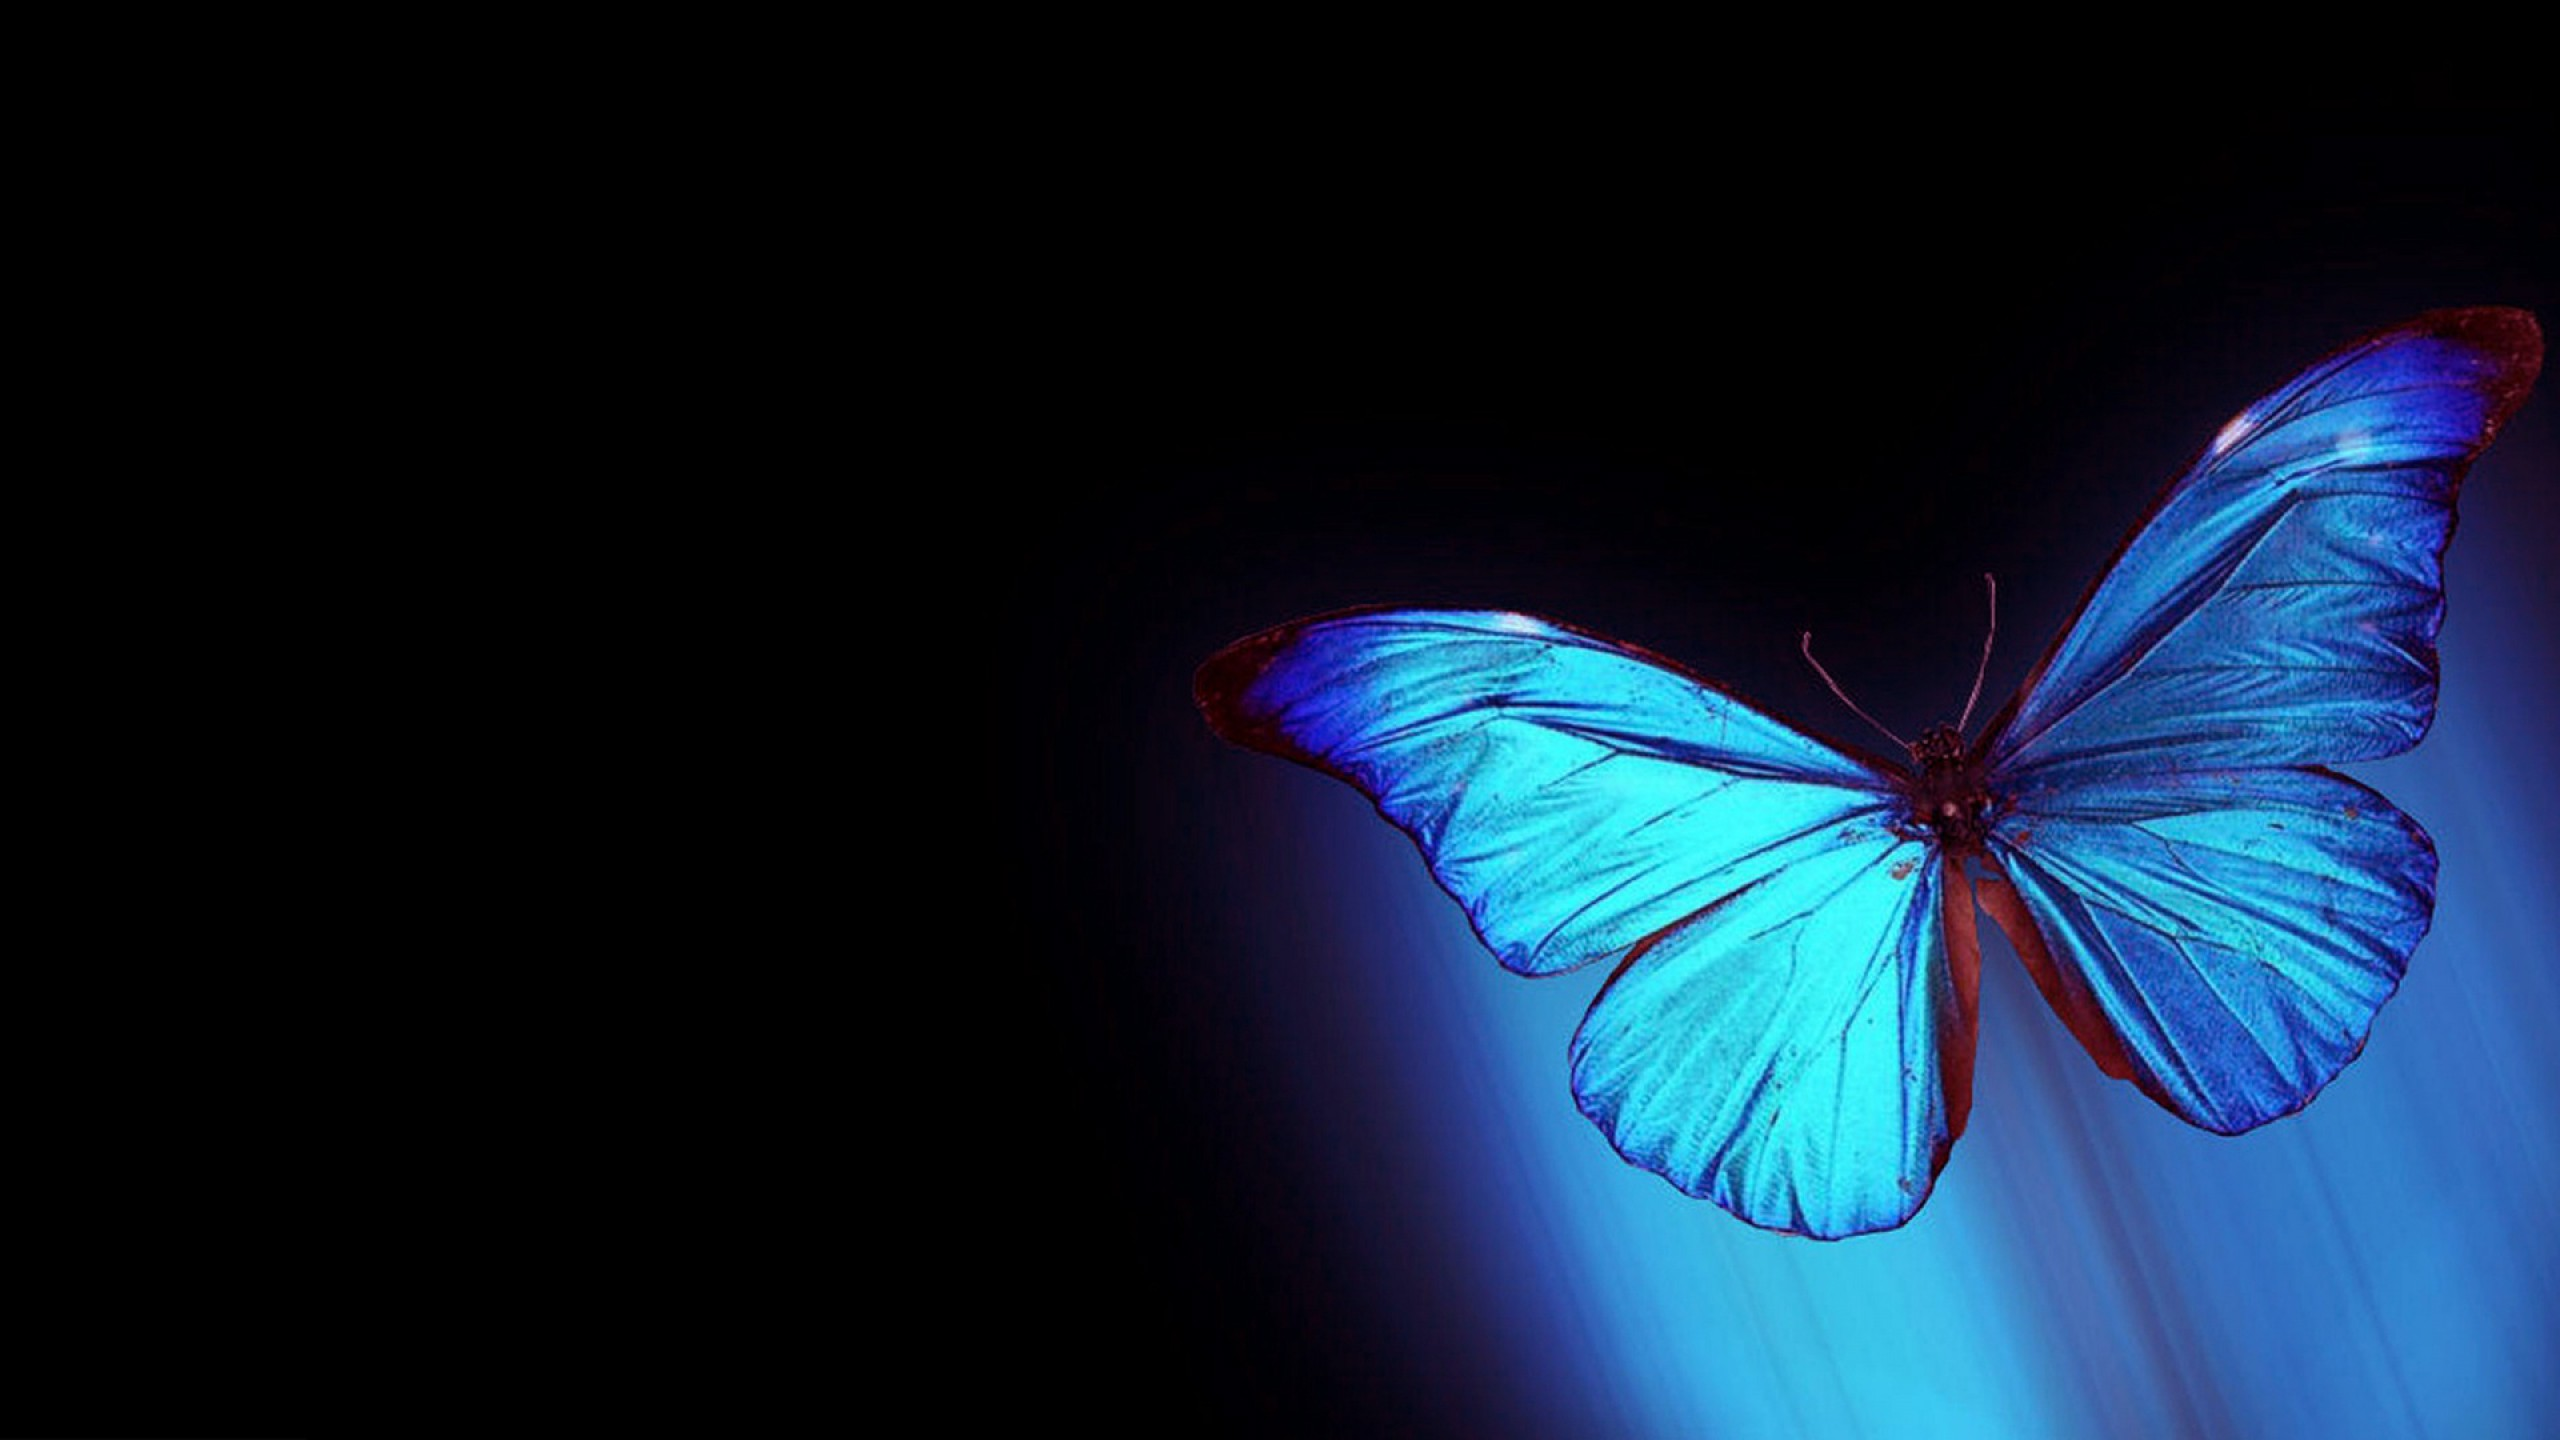 Black And Blue Butterfly Wallpaper HD Background 2560x1440